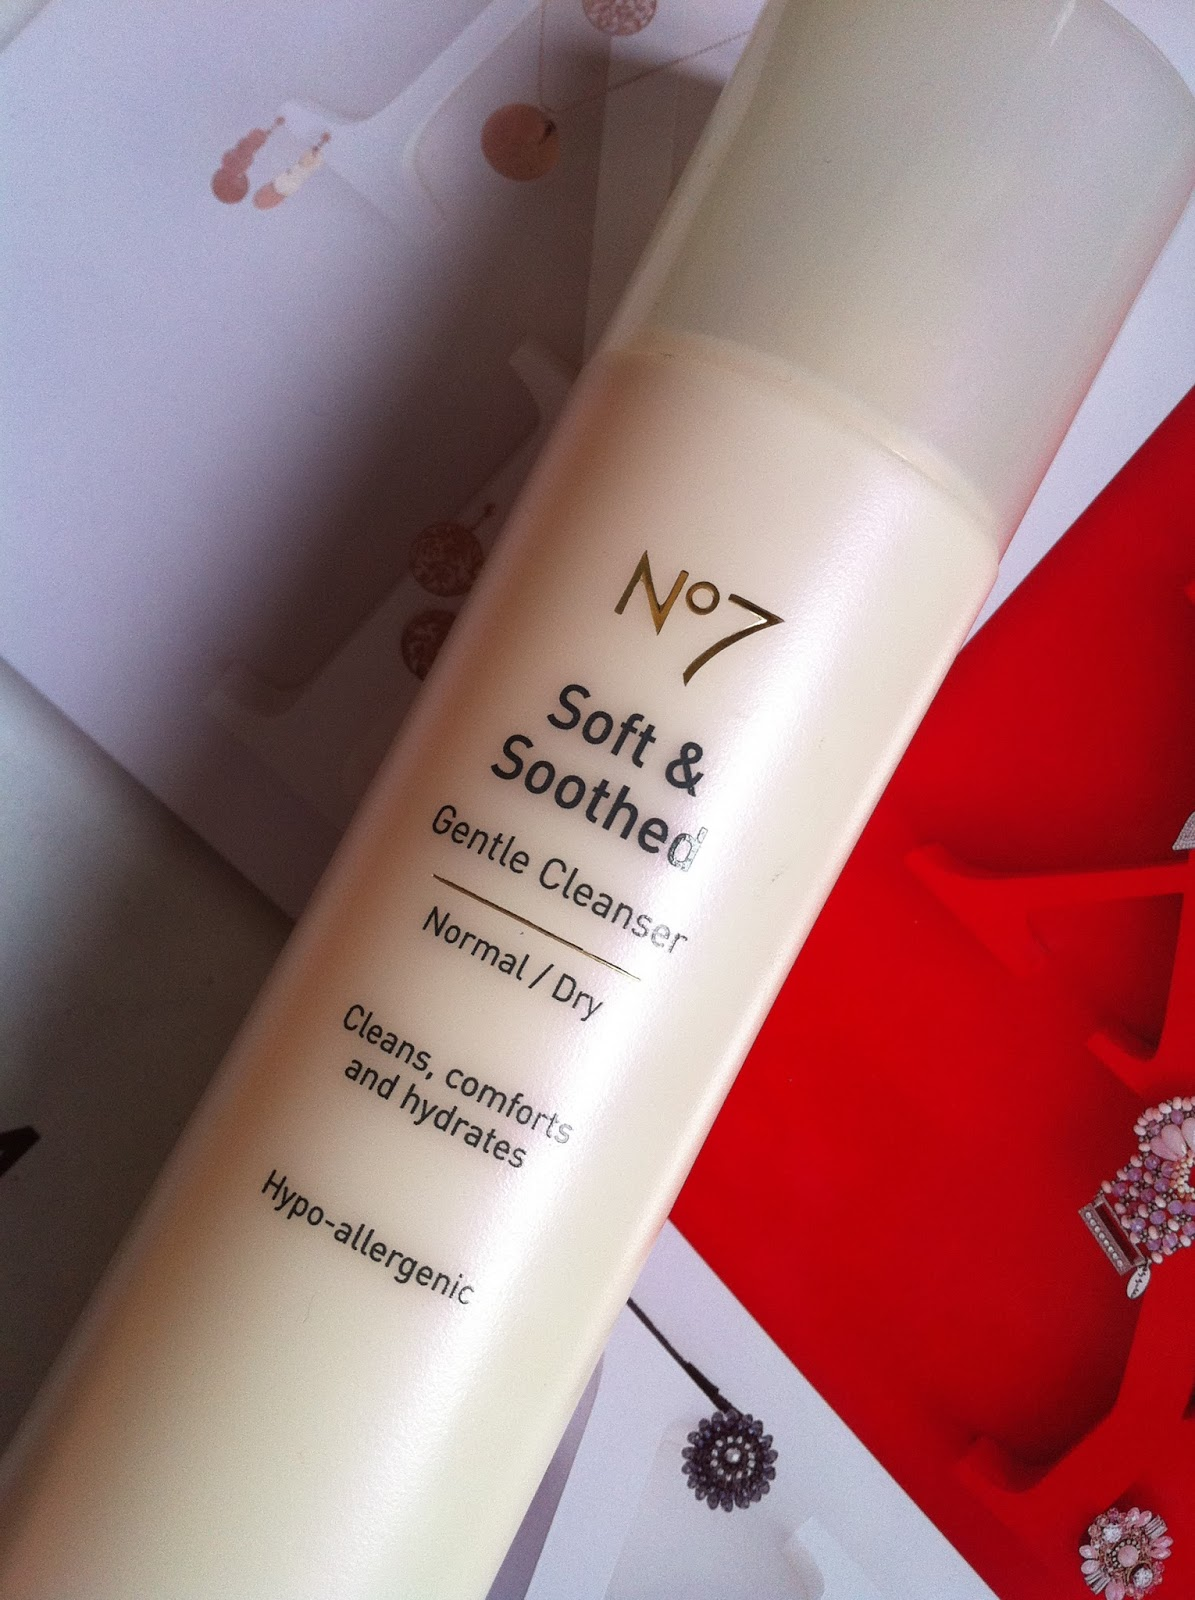 No7 Soft & Soothed Gentle Cleanser